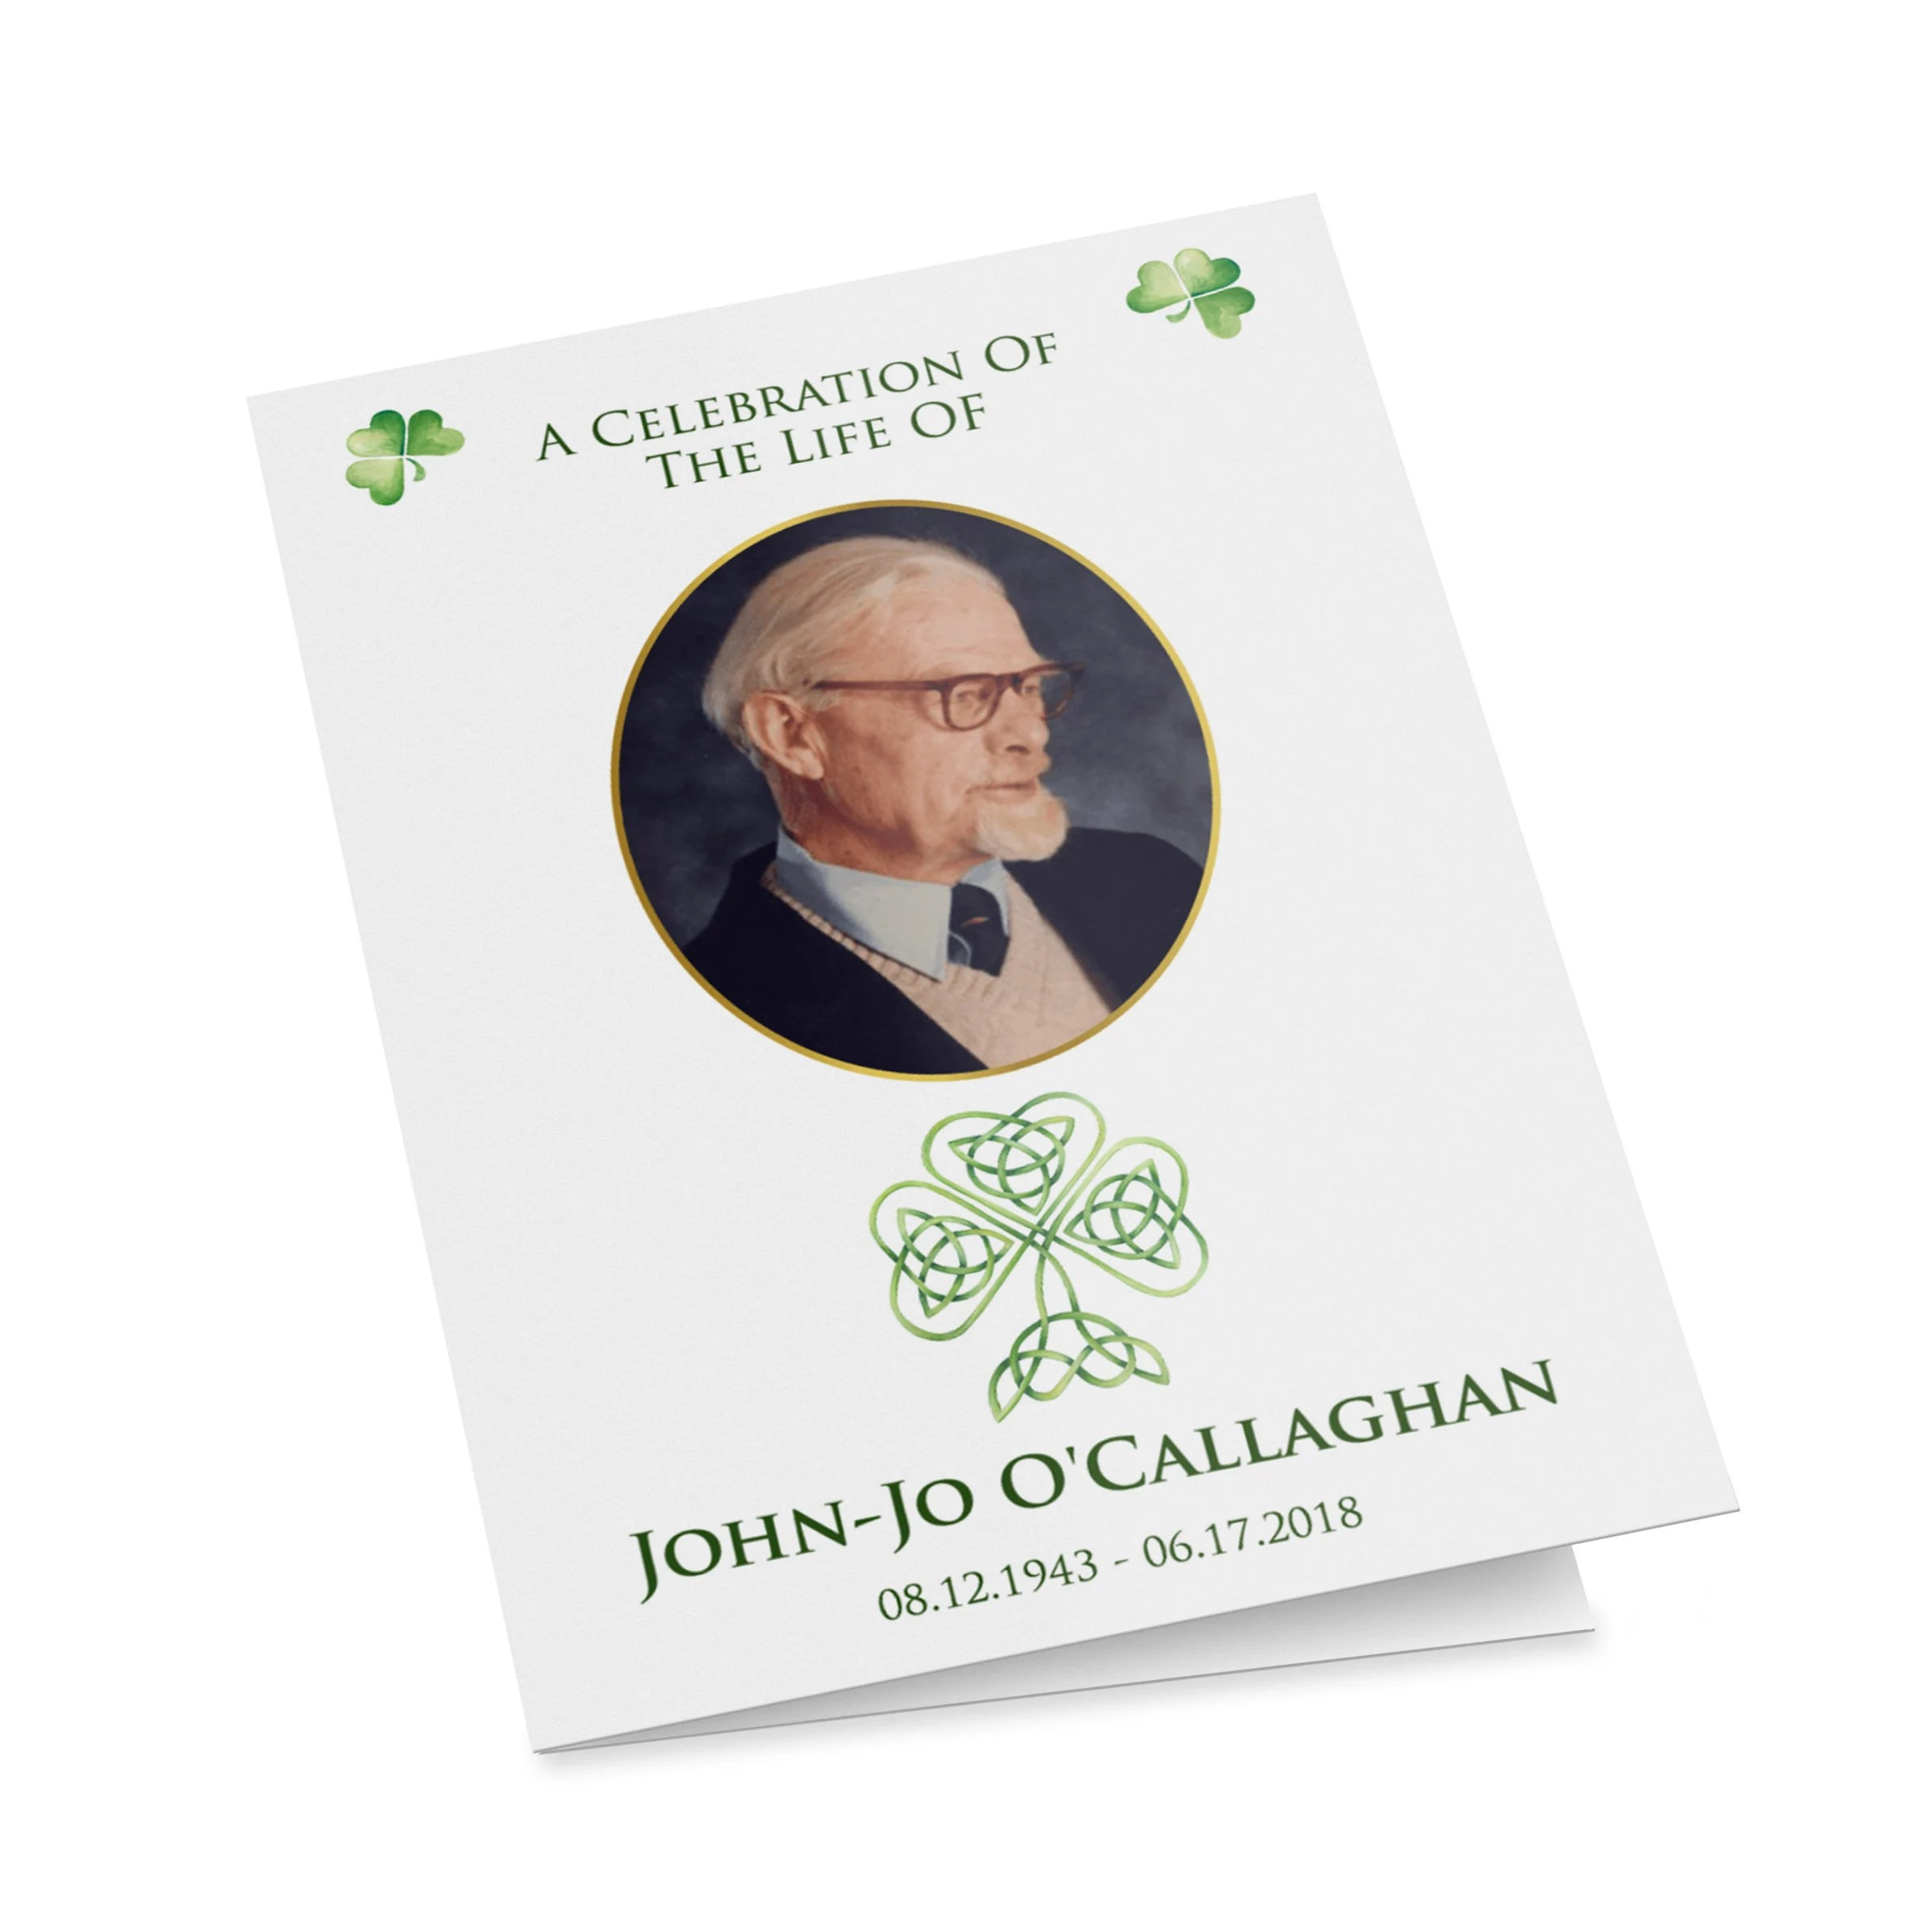 Irish Catholic Funeral Mass Program Template With